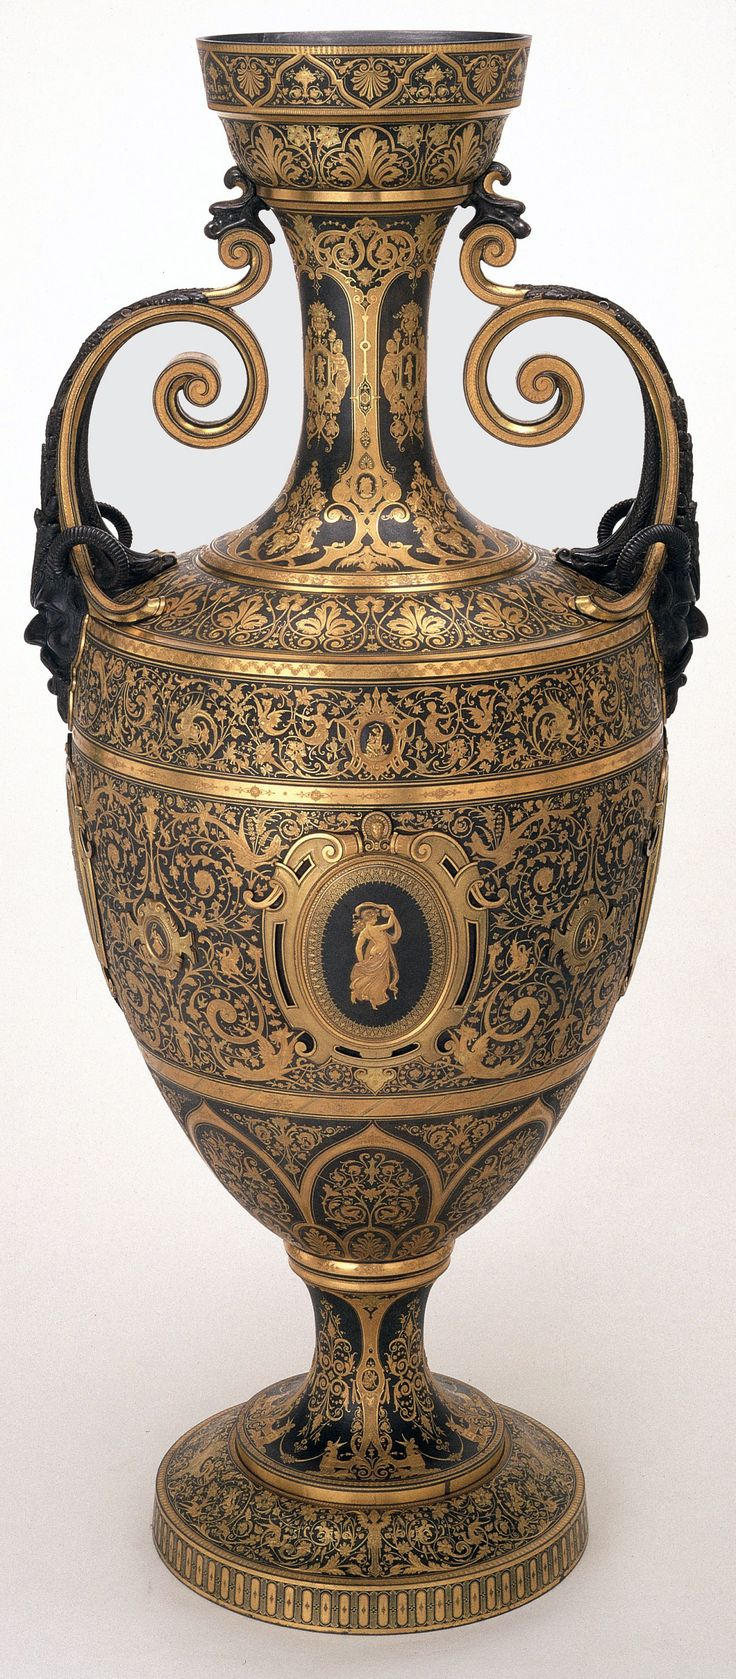 Khalili Collections | Spanish Damascened Metalwork | Handled Urn